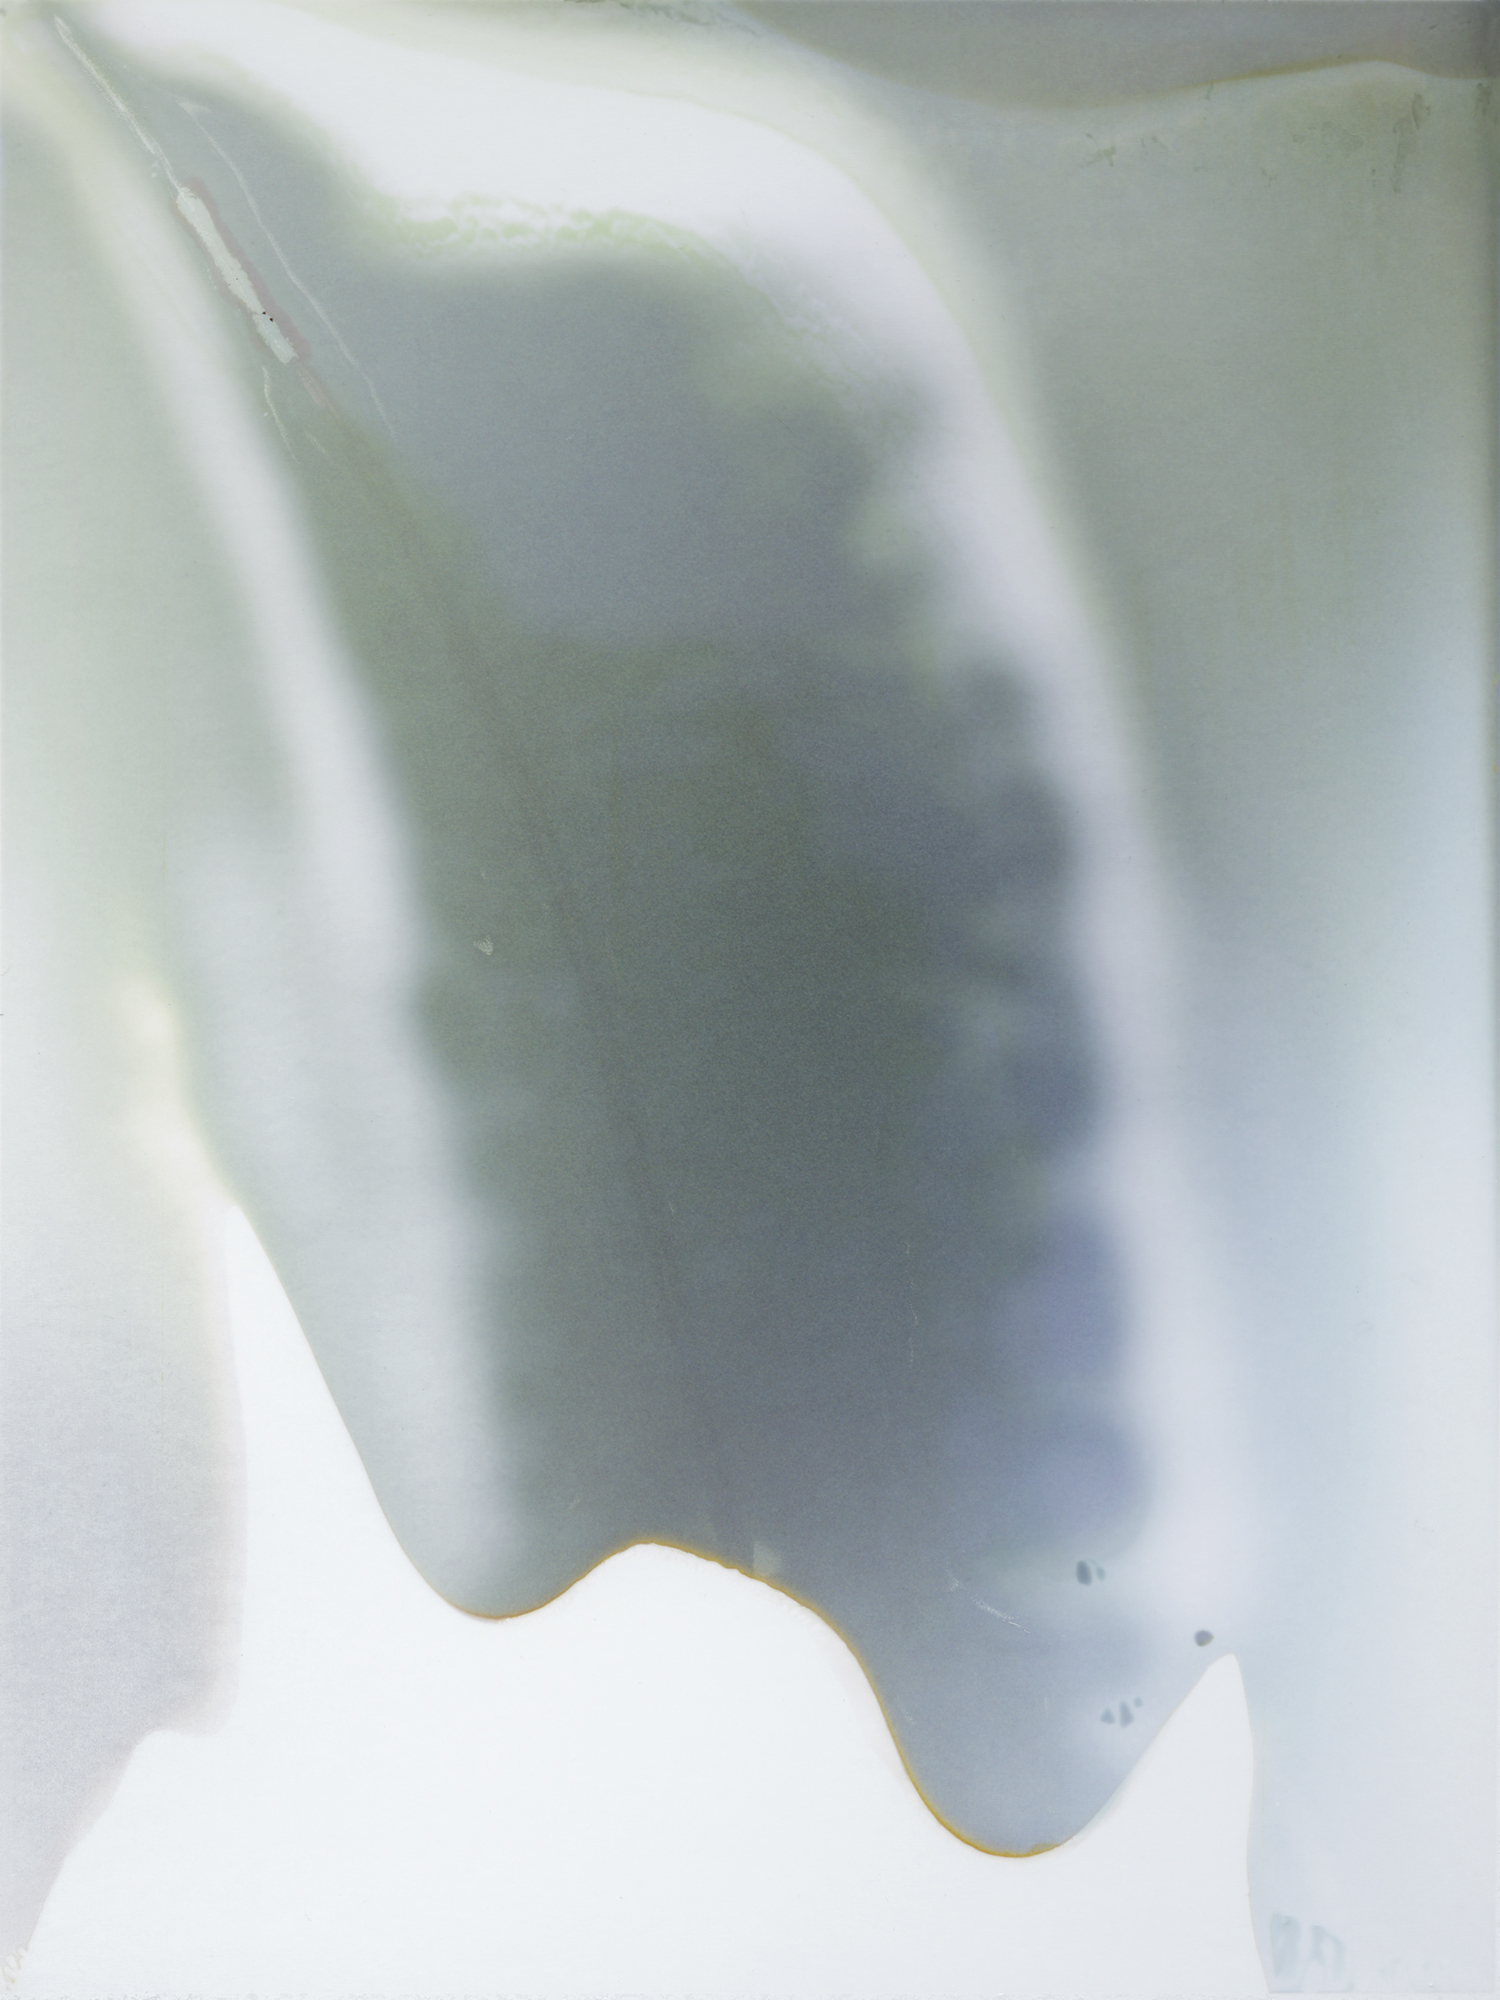 Abstract #3, White Polaroid Pull